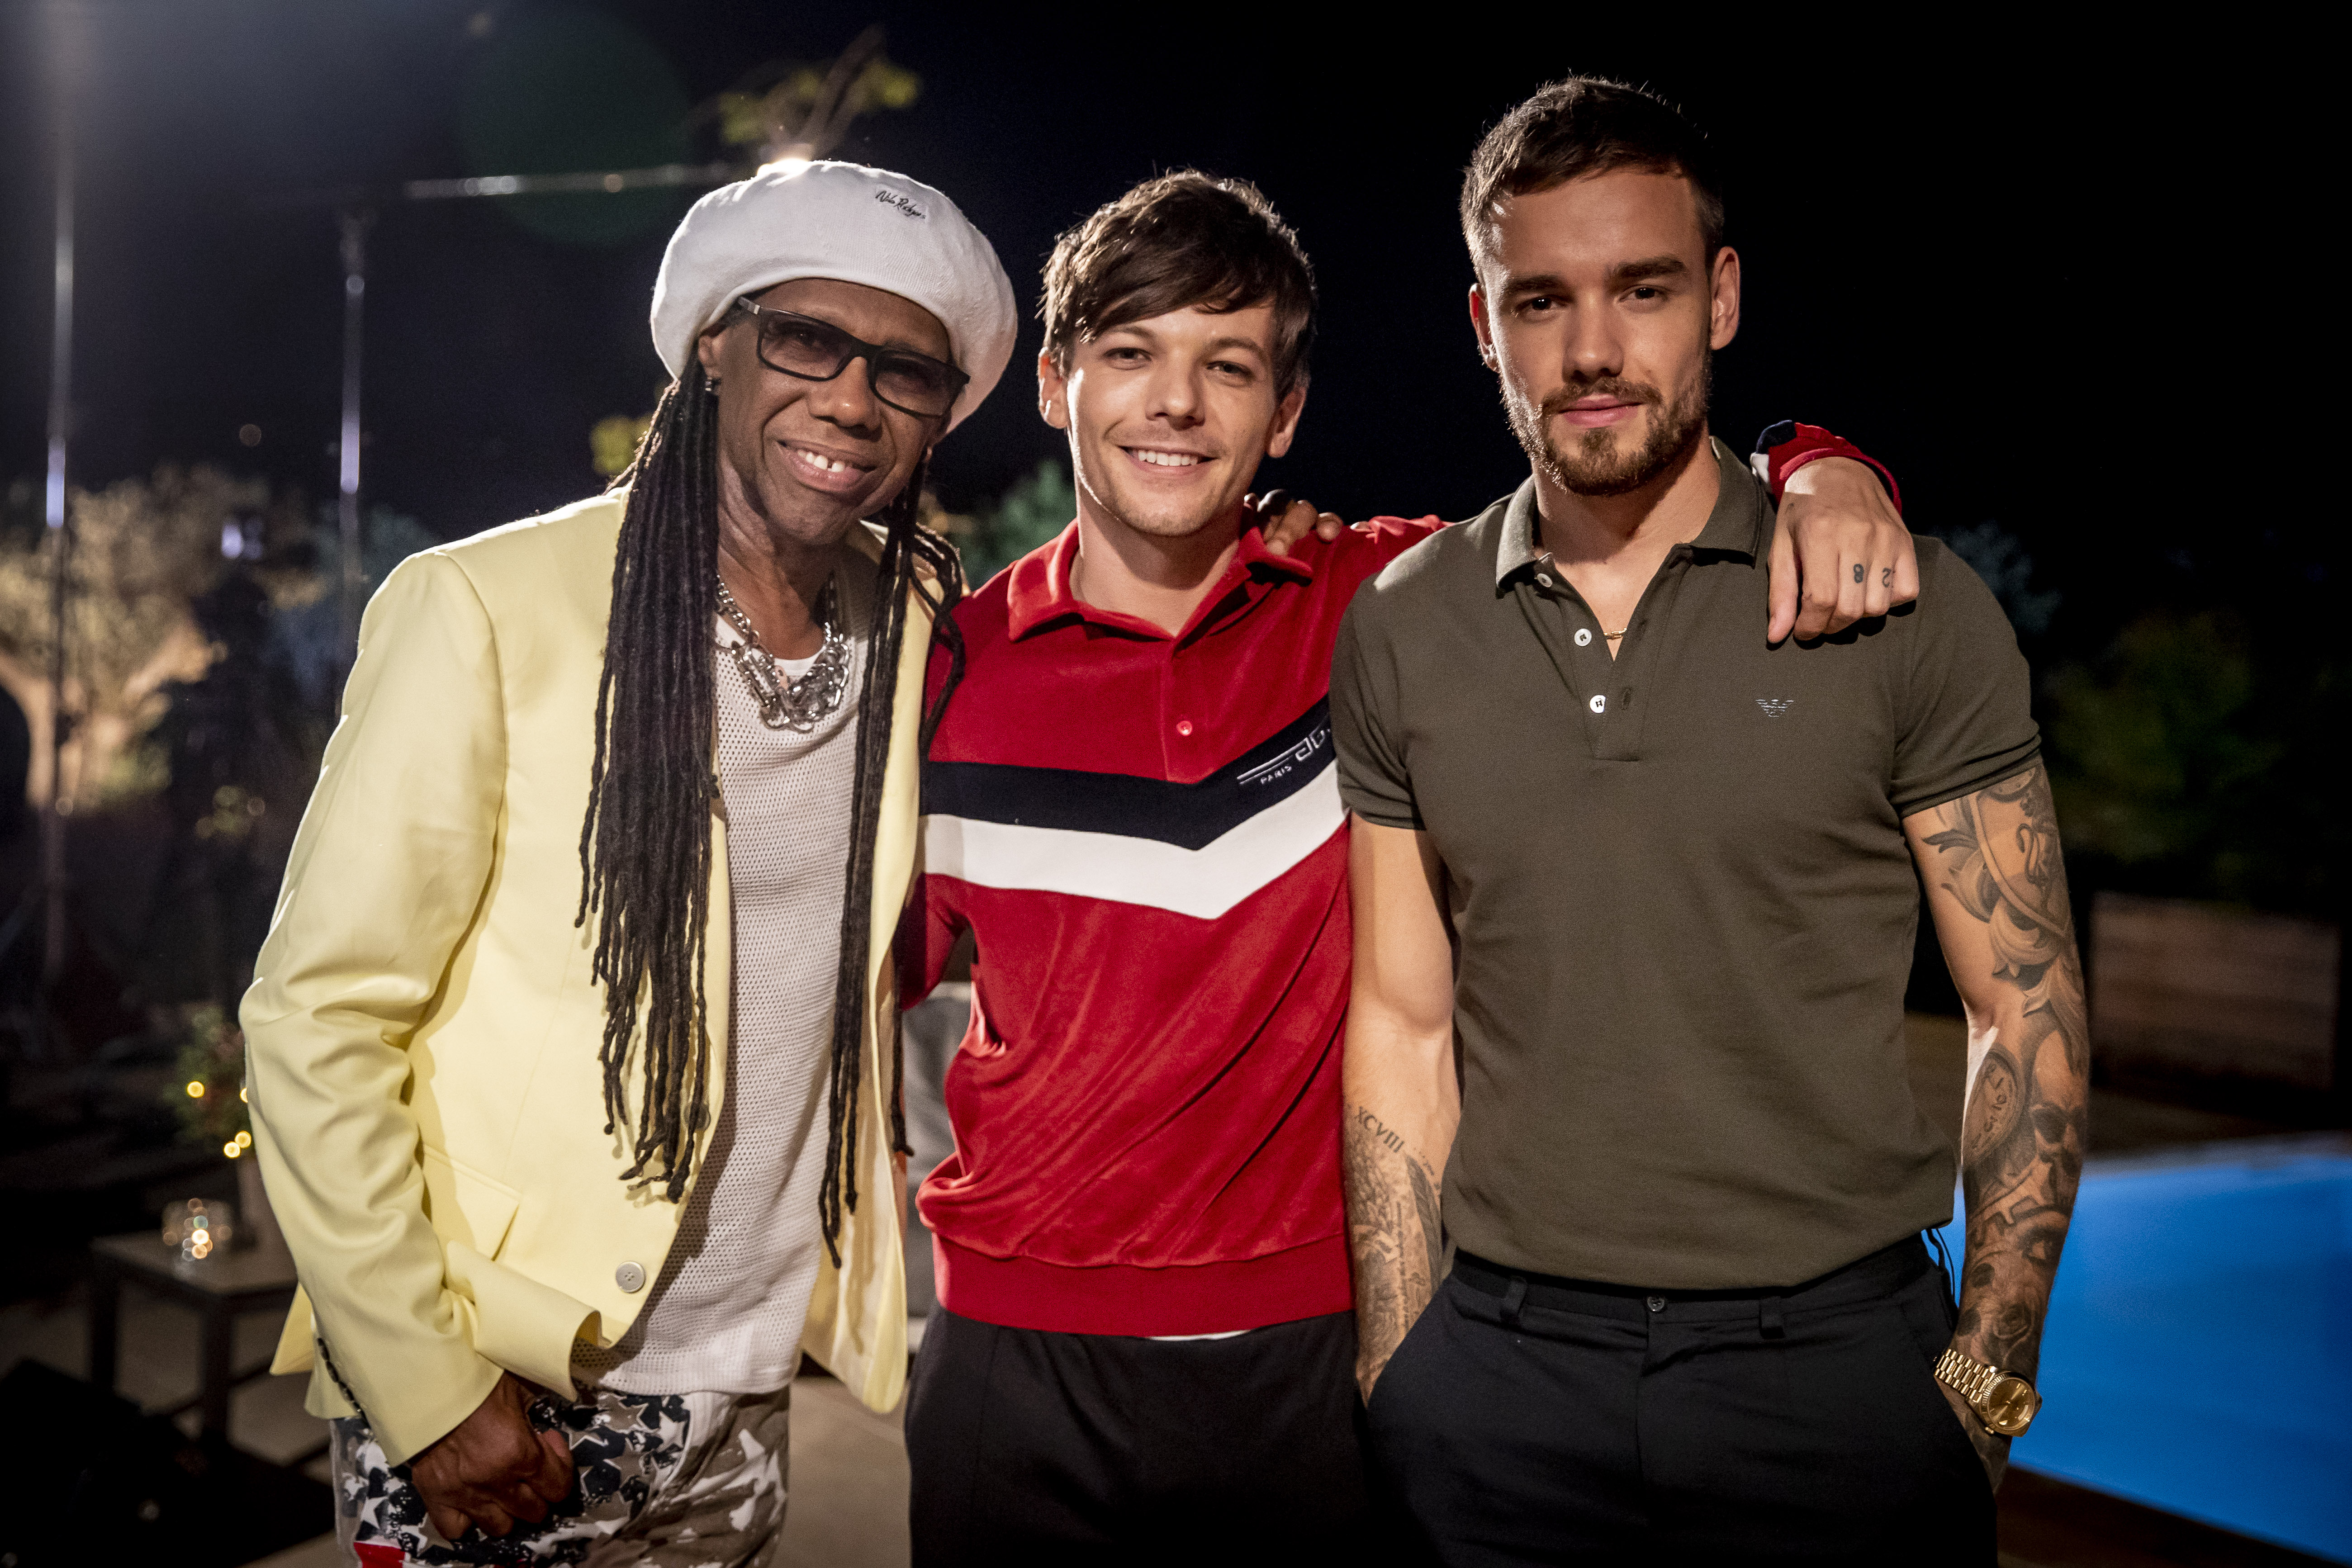 X Factor's Louis Tomlinson joined by Liam Payne in One Direction reunion at judges' houses